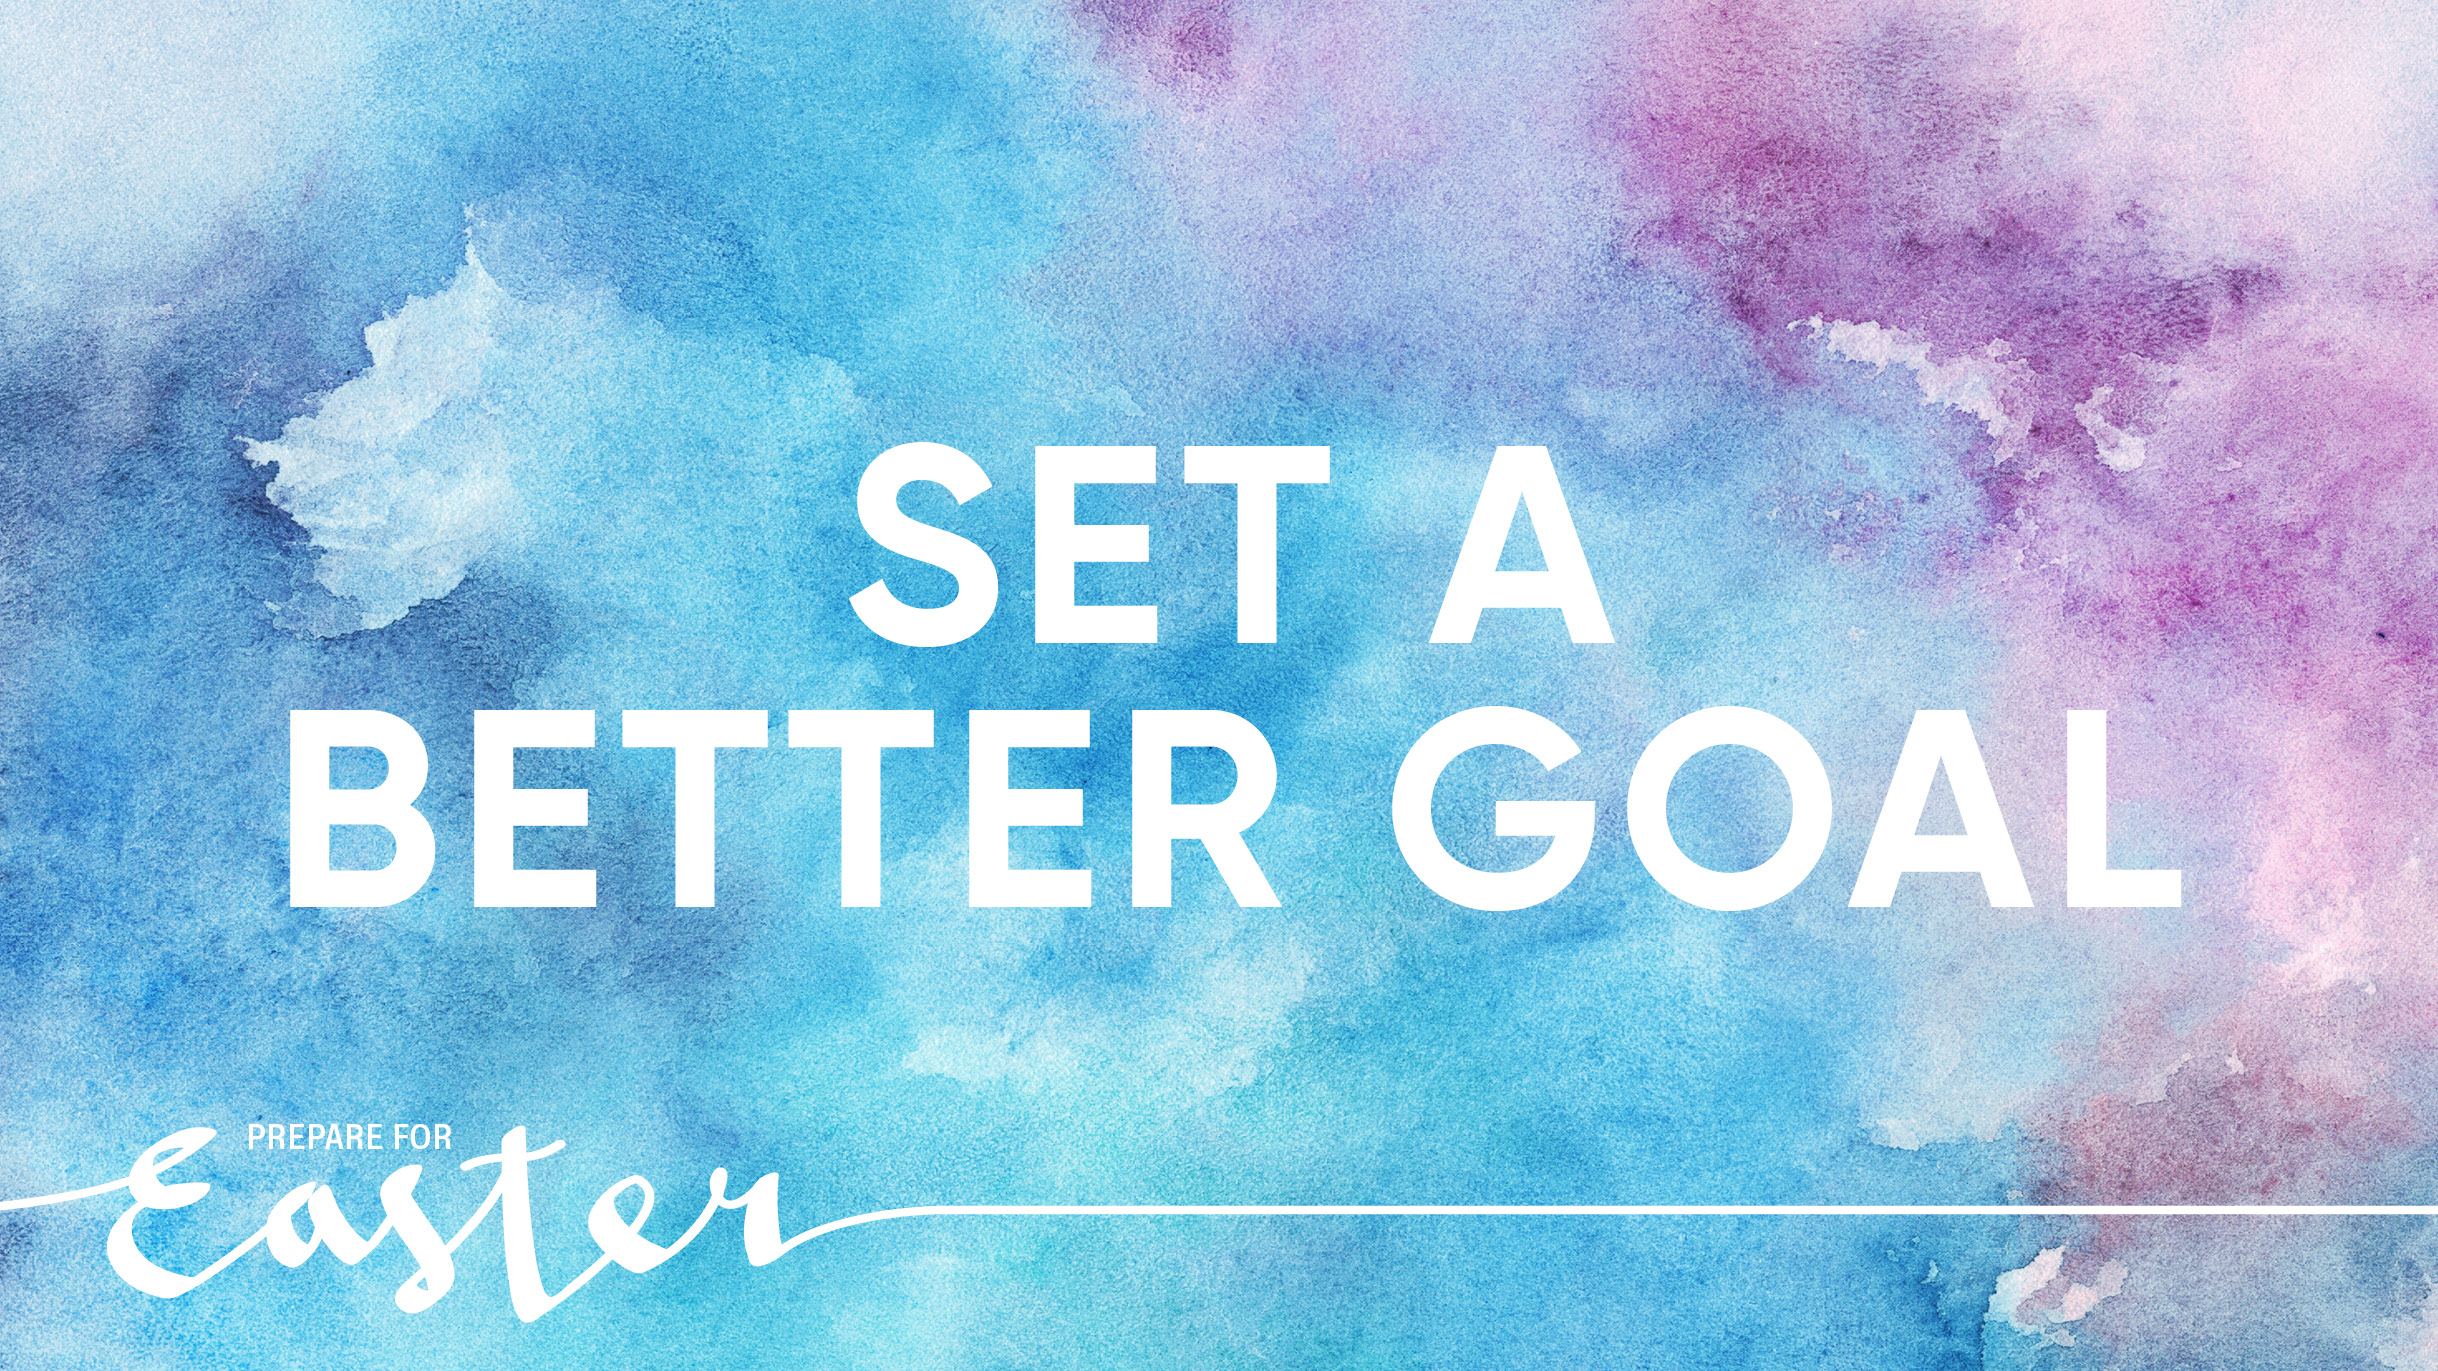 Prepare for Easter: Set a Better Goal